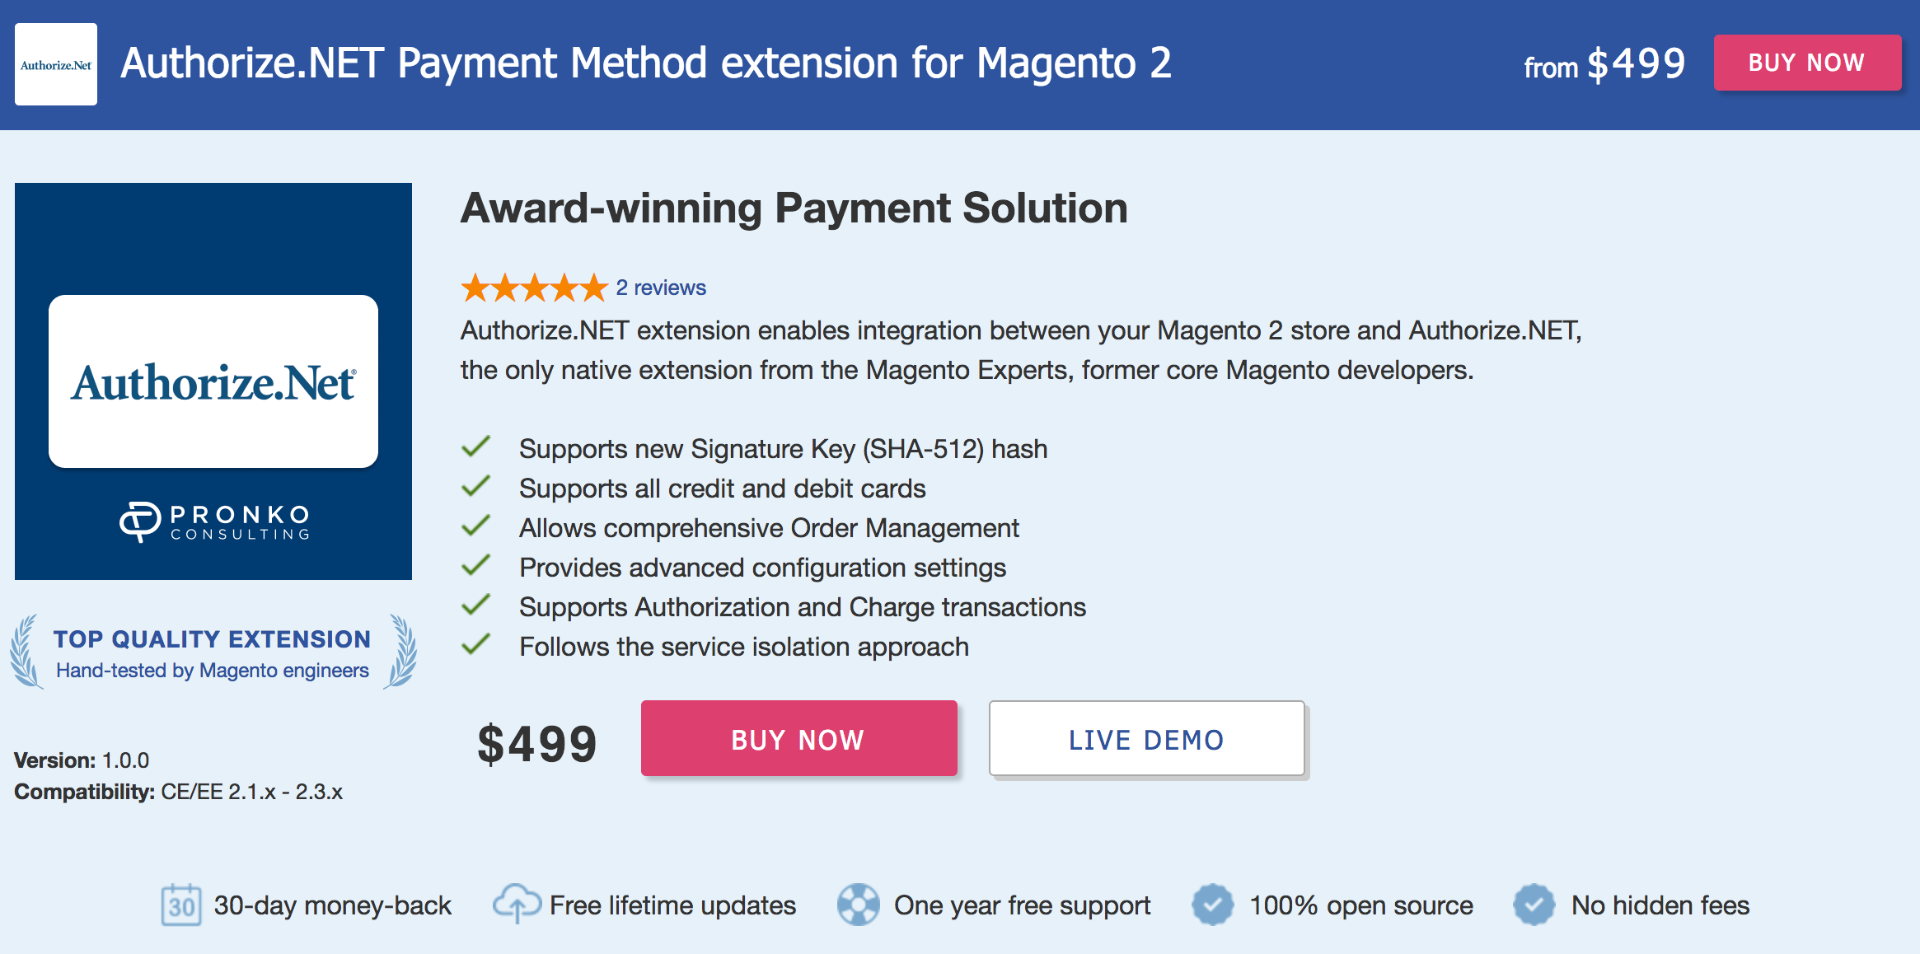 Authorize.net payment extension for Magento 2